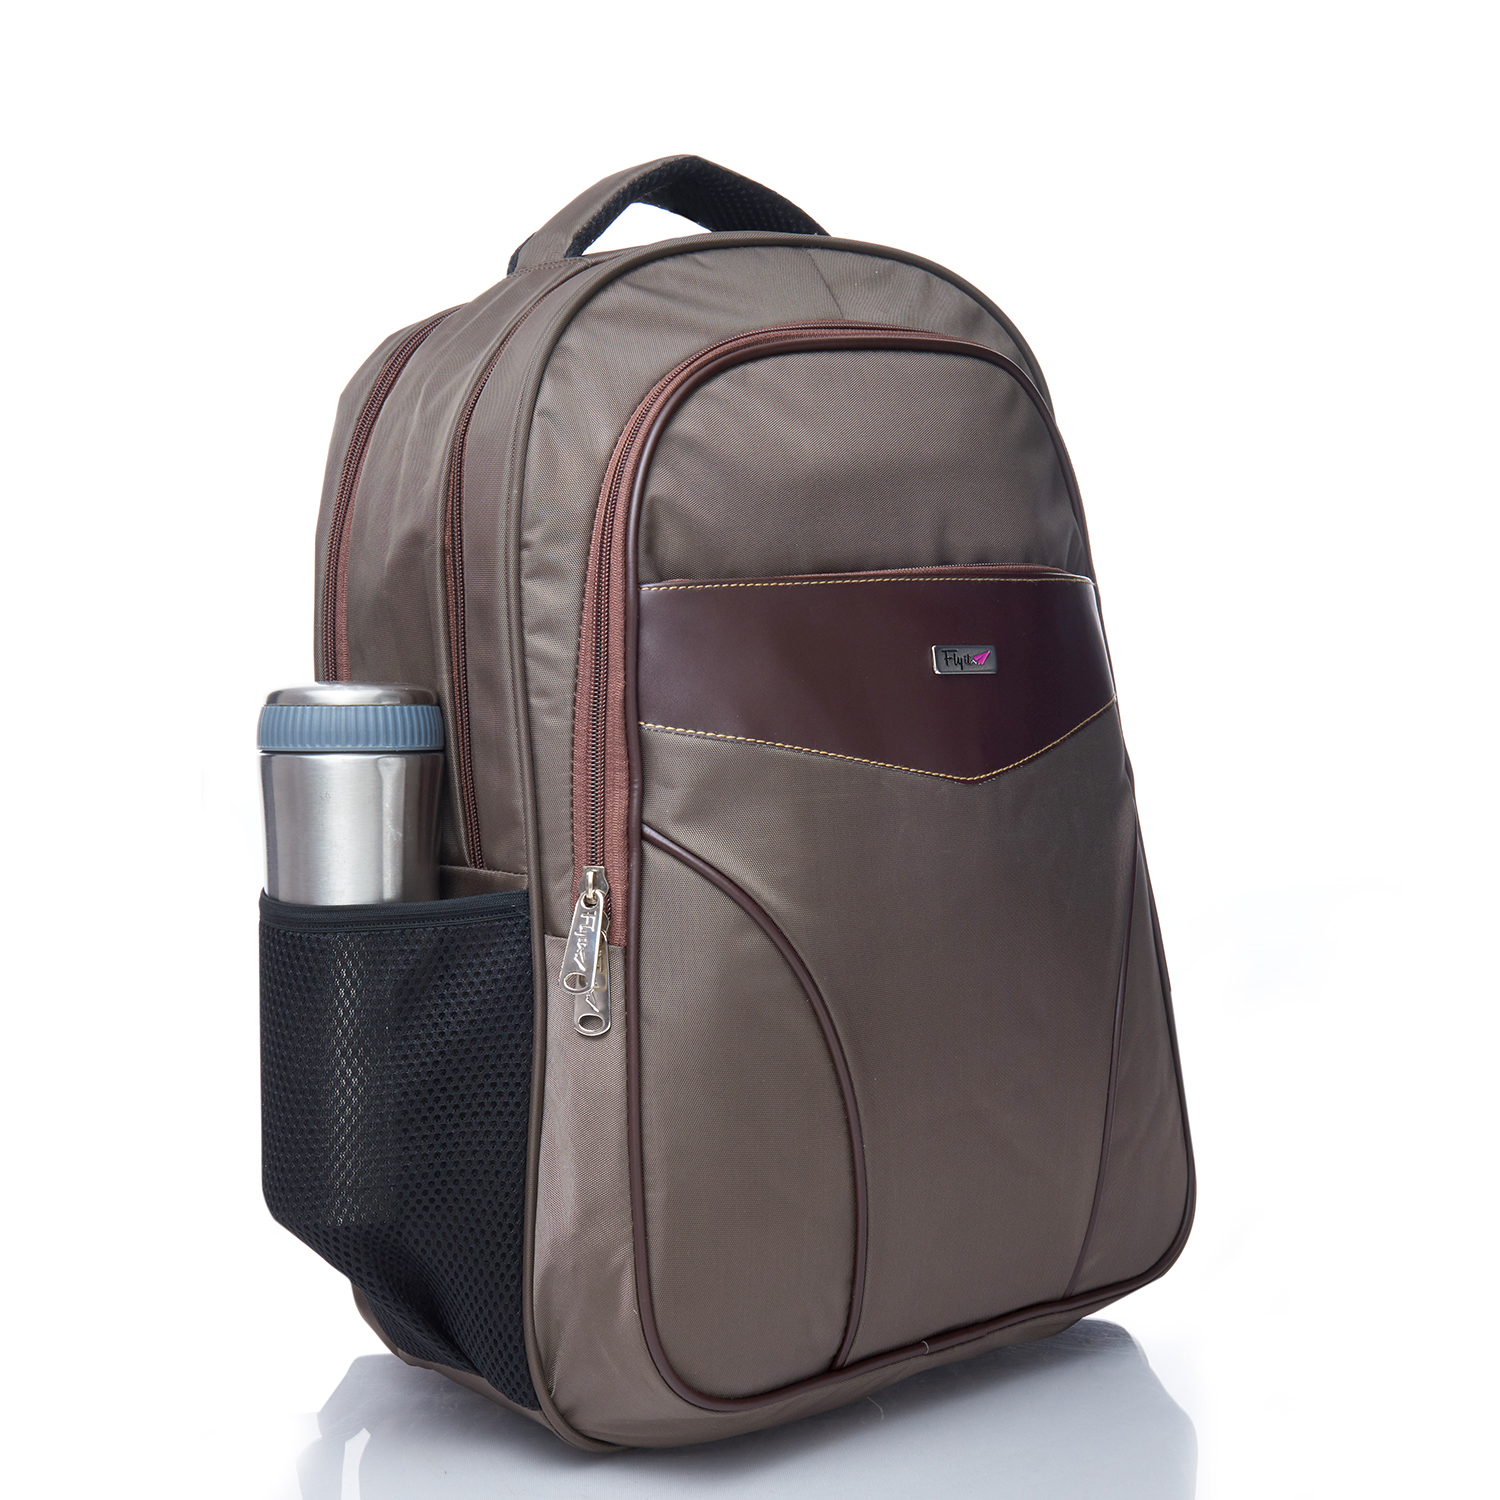 Flyit Travel Backpack